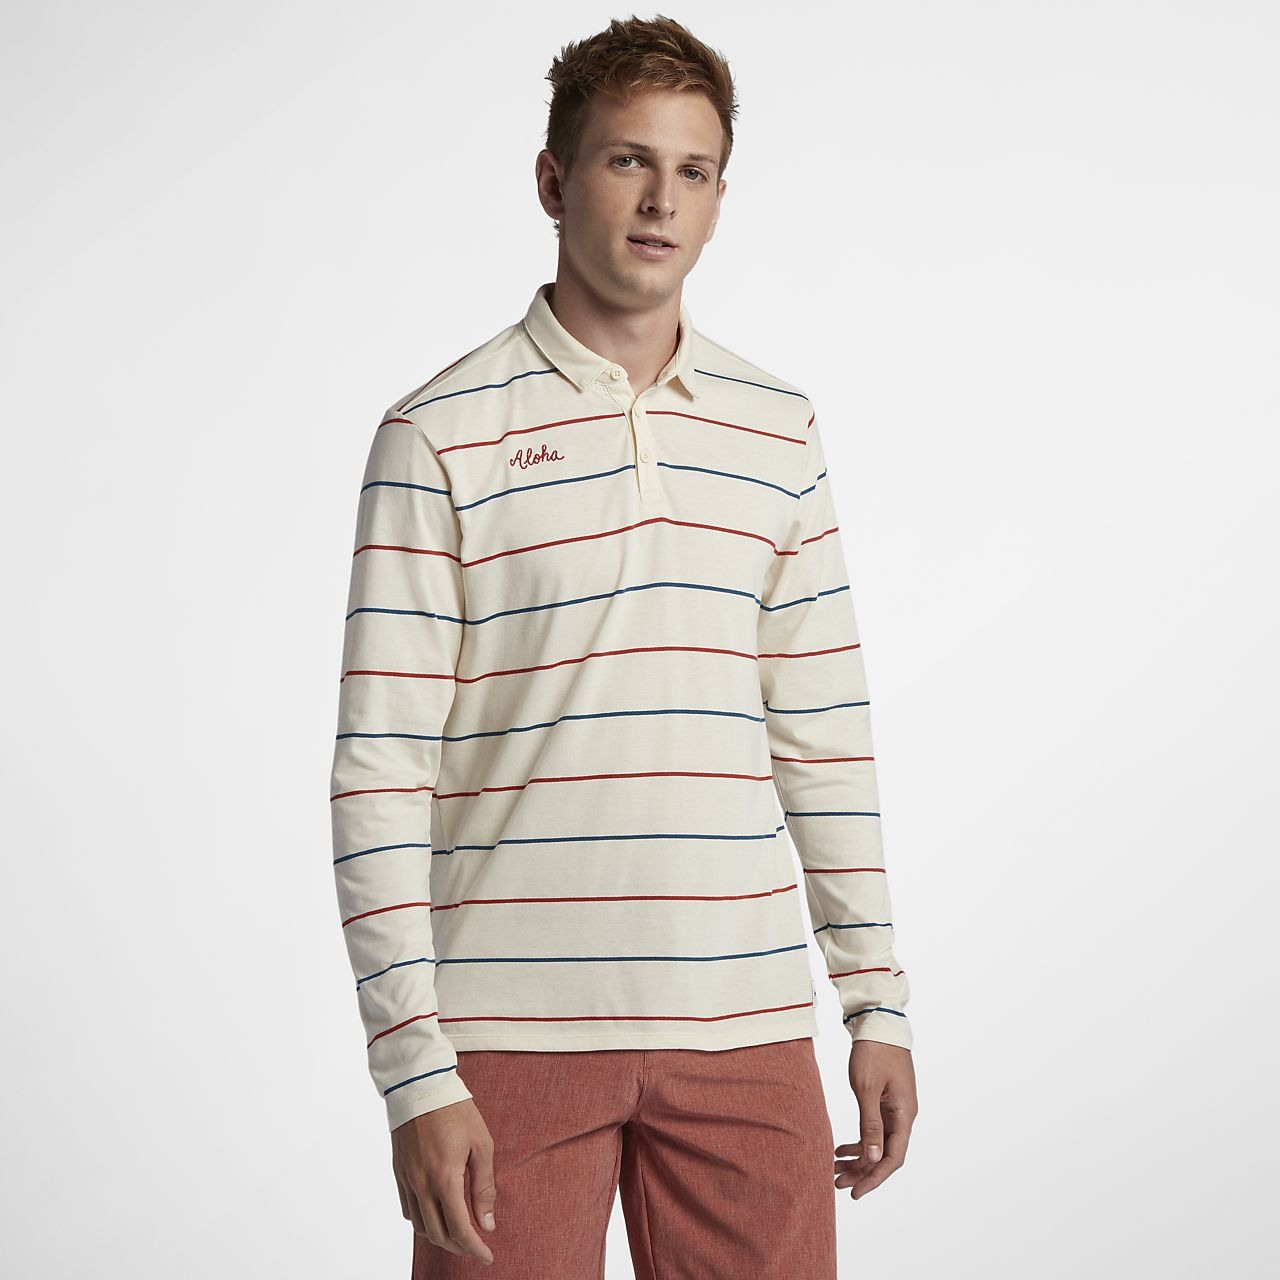 Hurley Channels Polo Men's Long-Sleeve Top